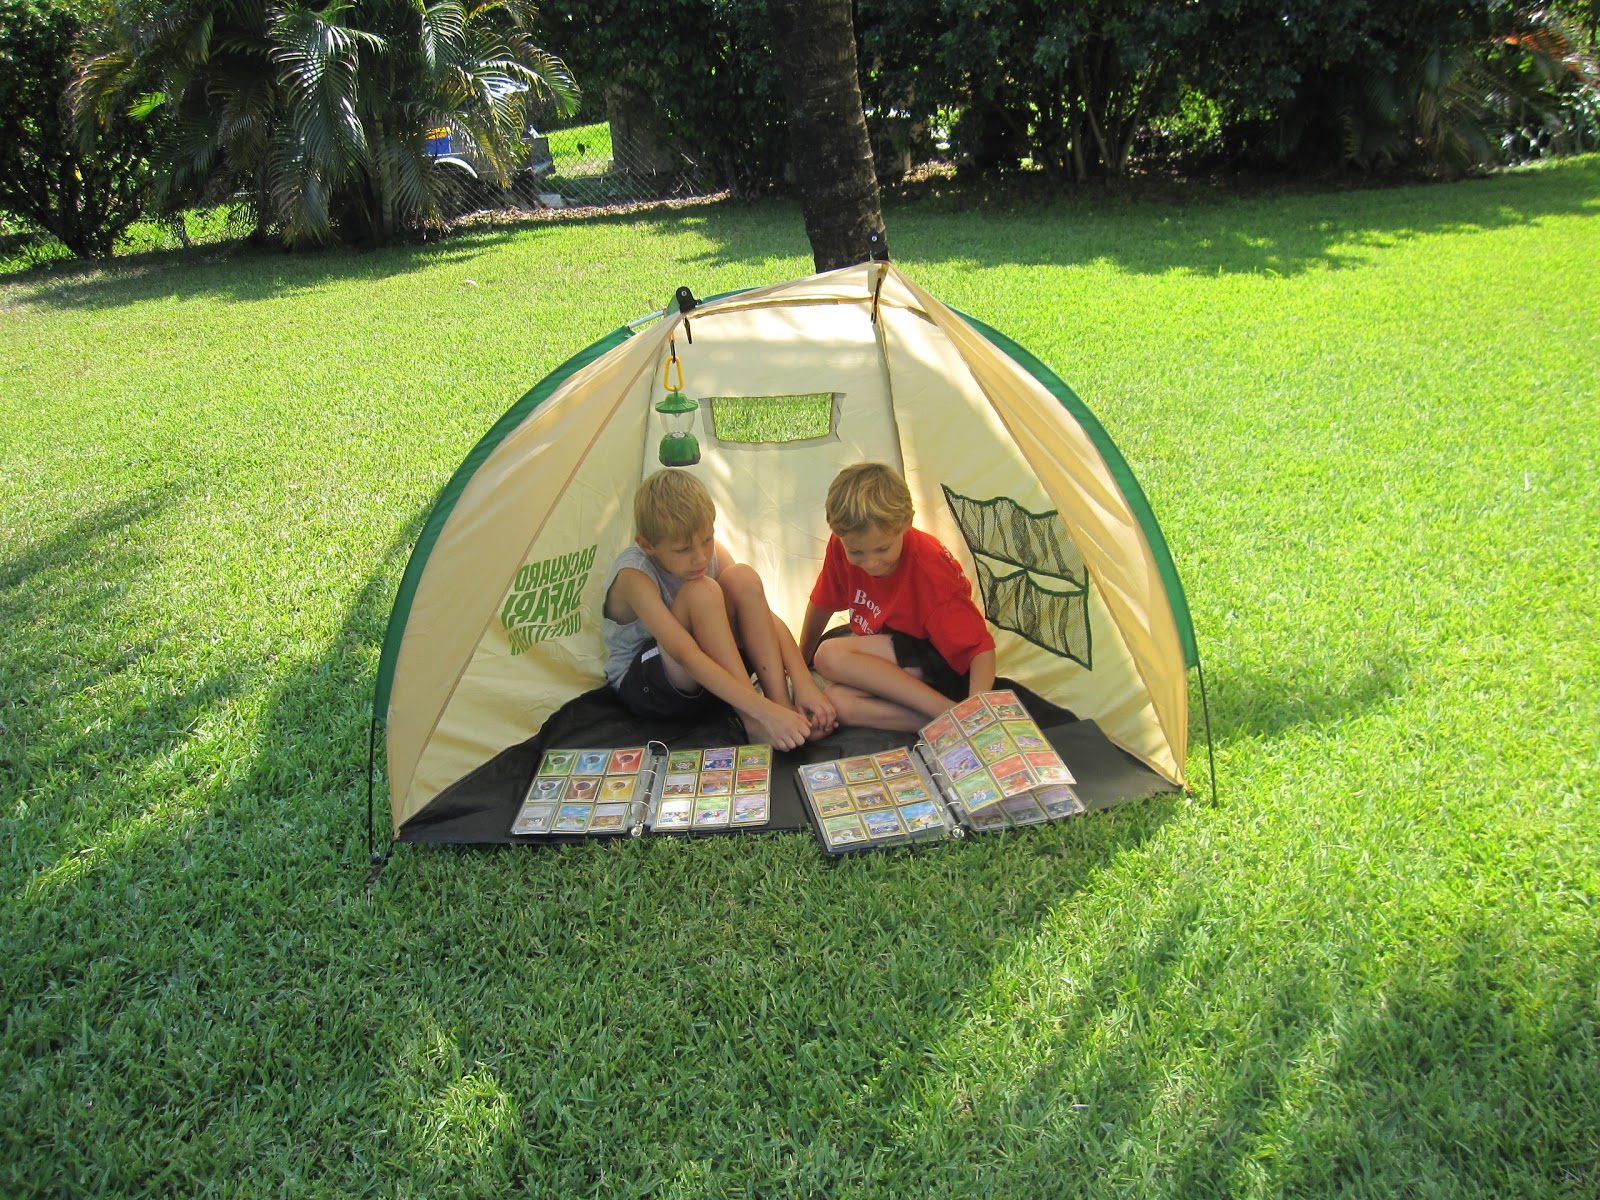 Susan Heim On Parenting Get Kids Outdoors This Summer With - Backyard safari outfitters butterfly habitat review